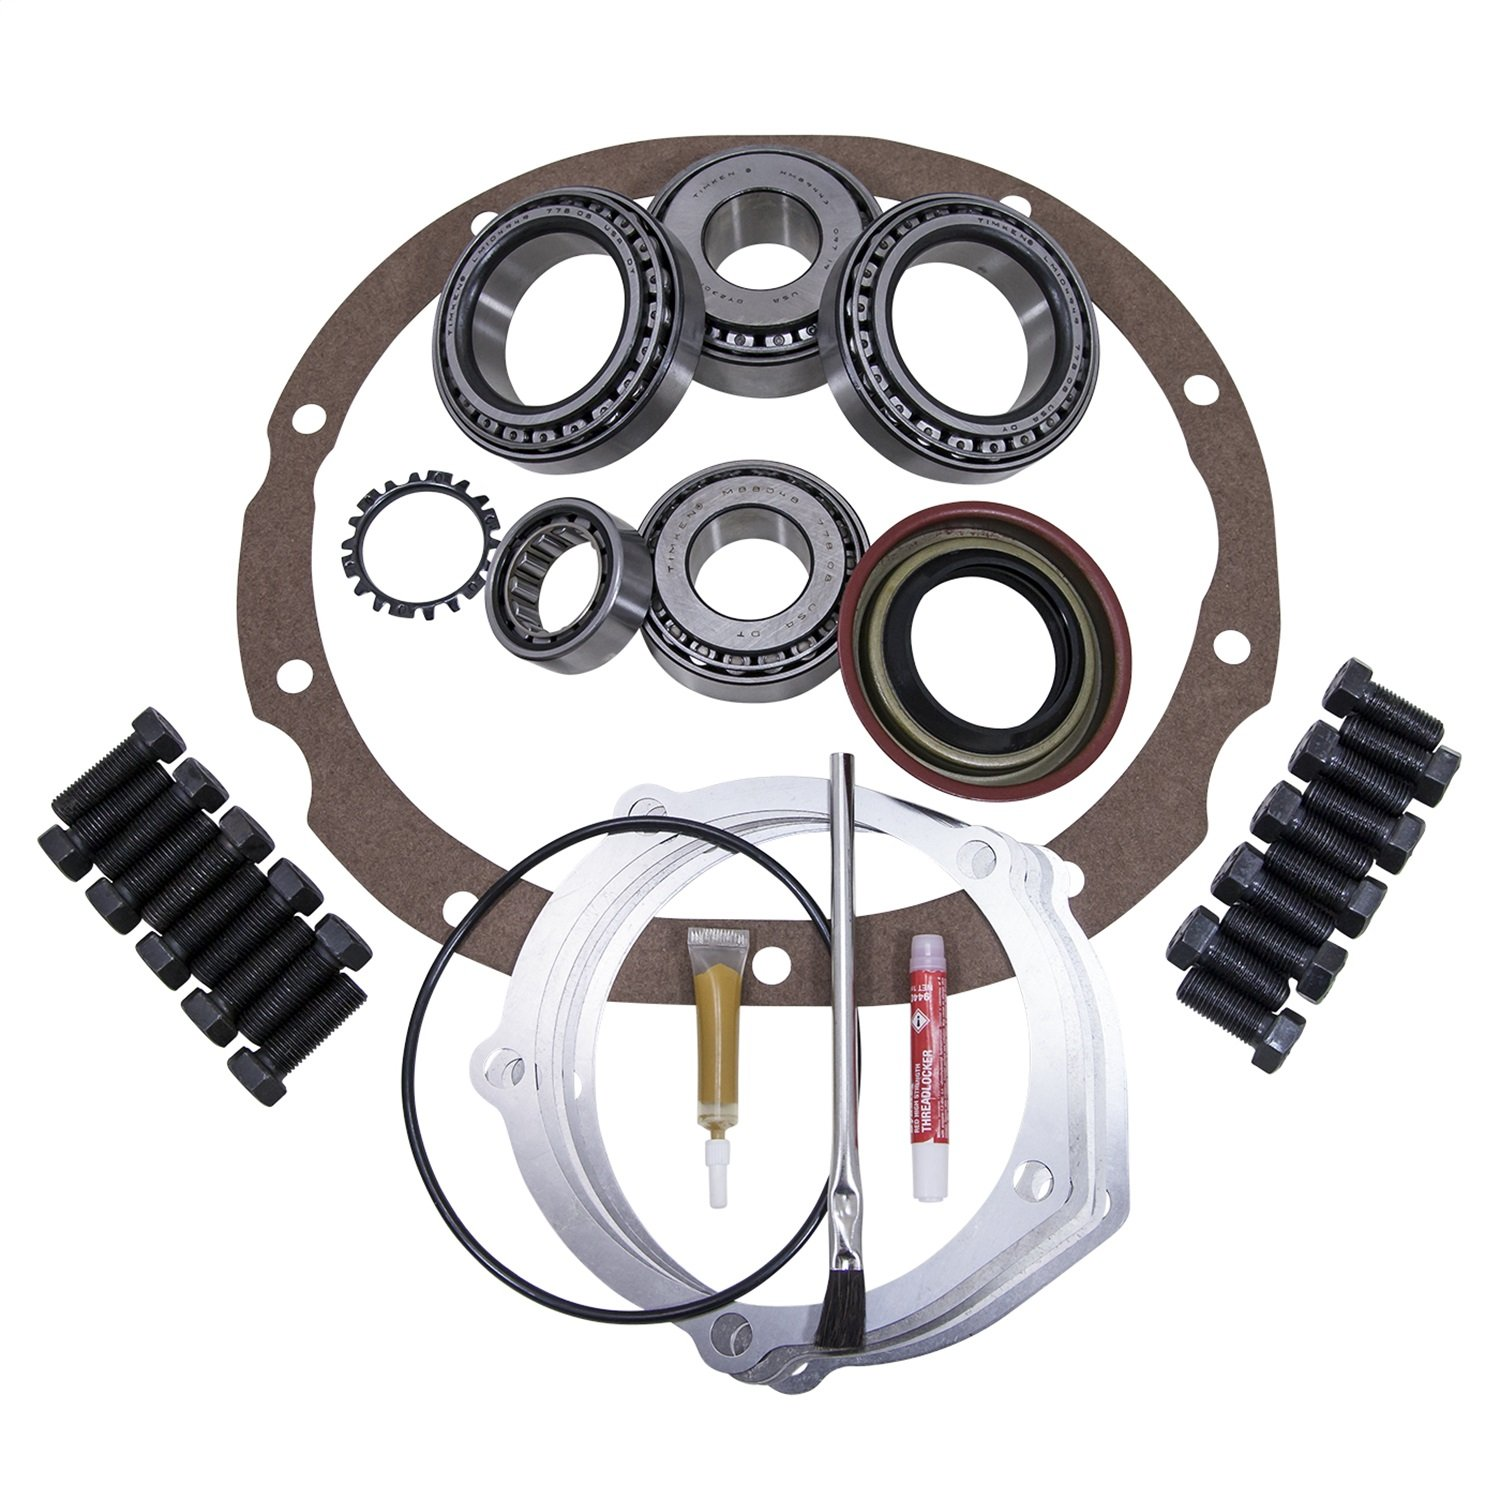 Yukon (YK F9-HIPIN-C) Master Overhaul Kit for Ford 8.8'' LM603011 Reverse Rotation Differential with 31 Spline by Yukon Gear